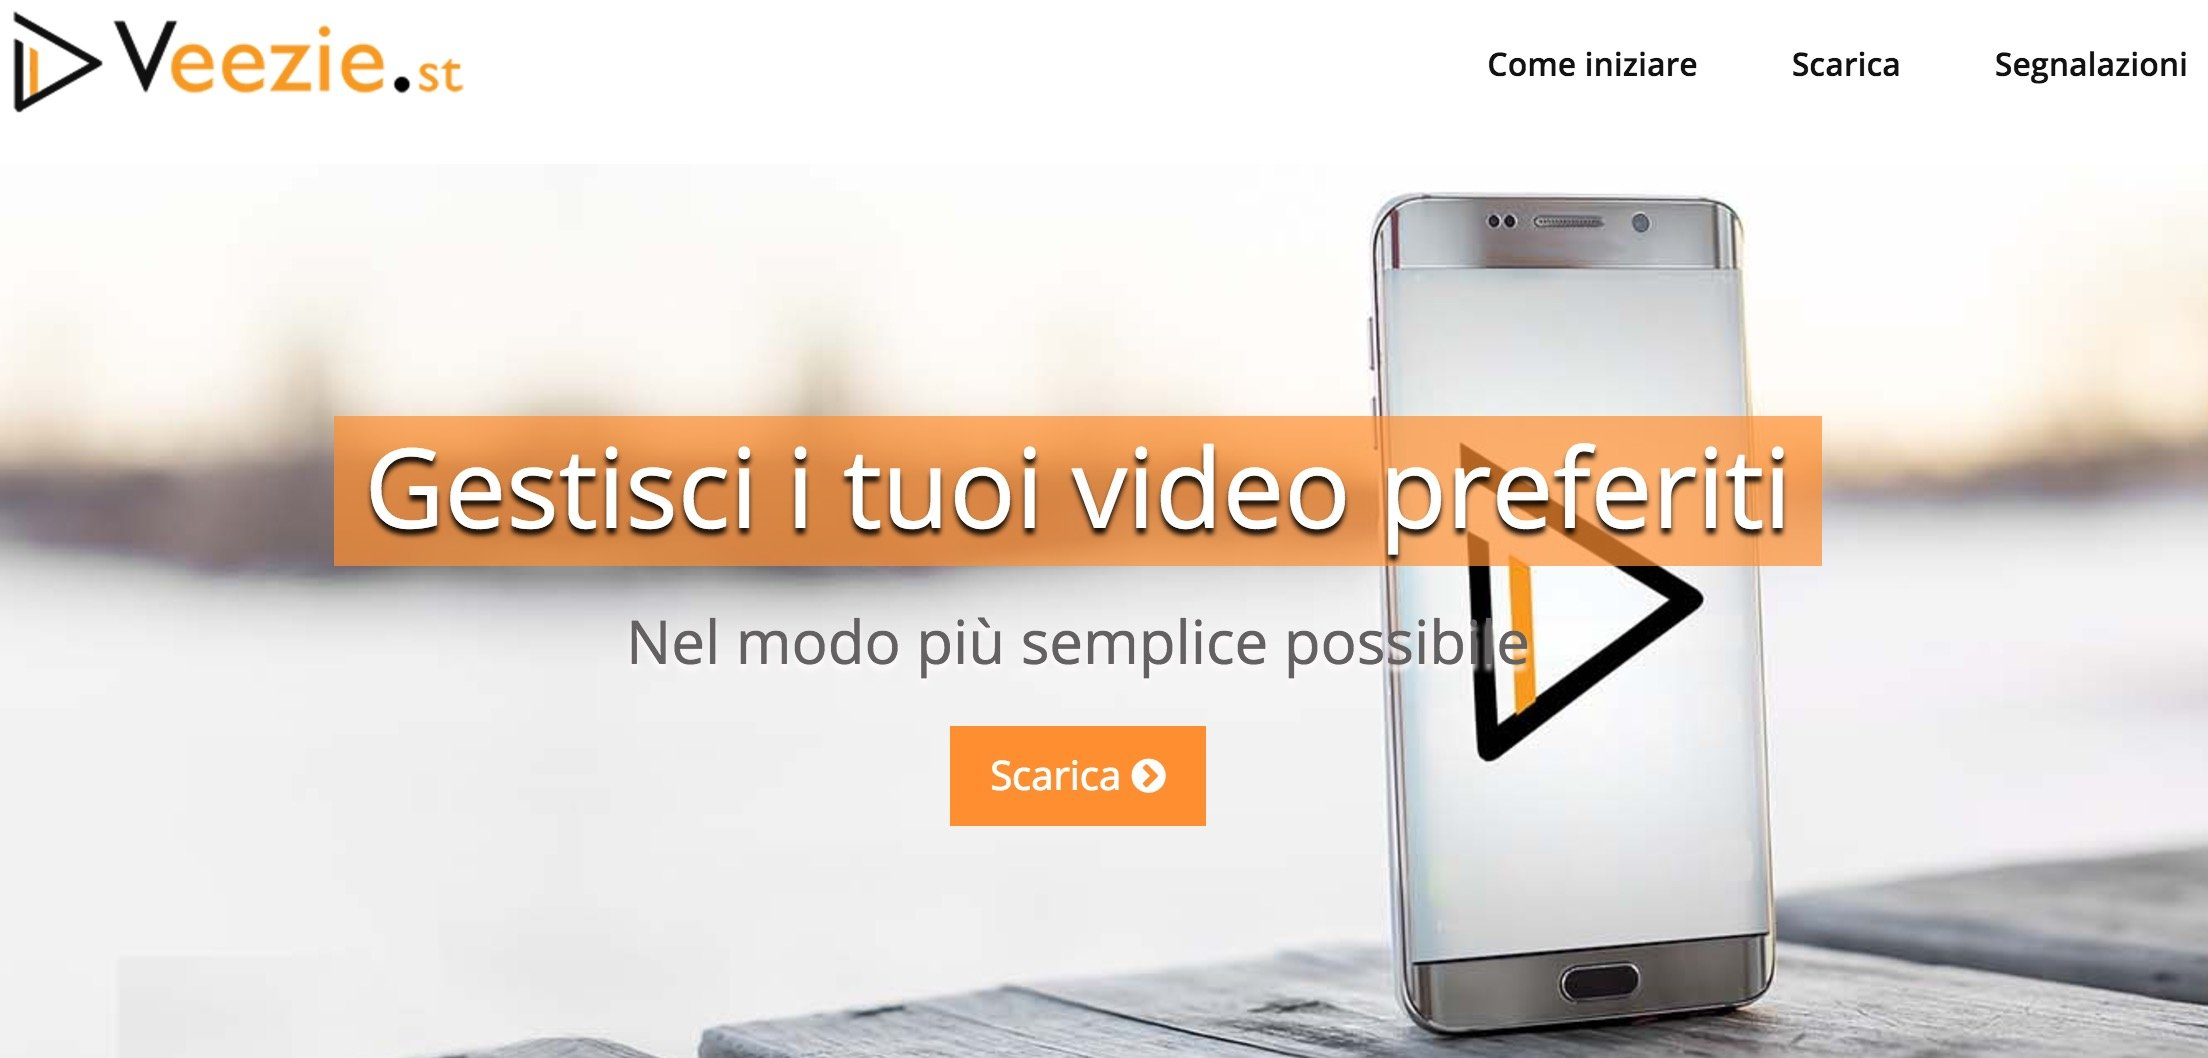 scaricare video da internet gratis italiano